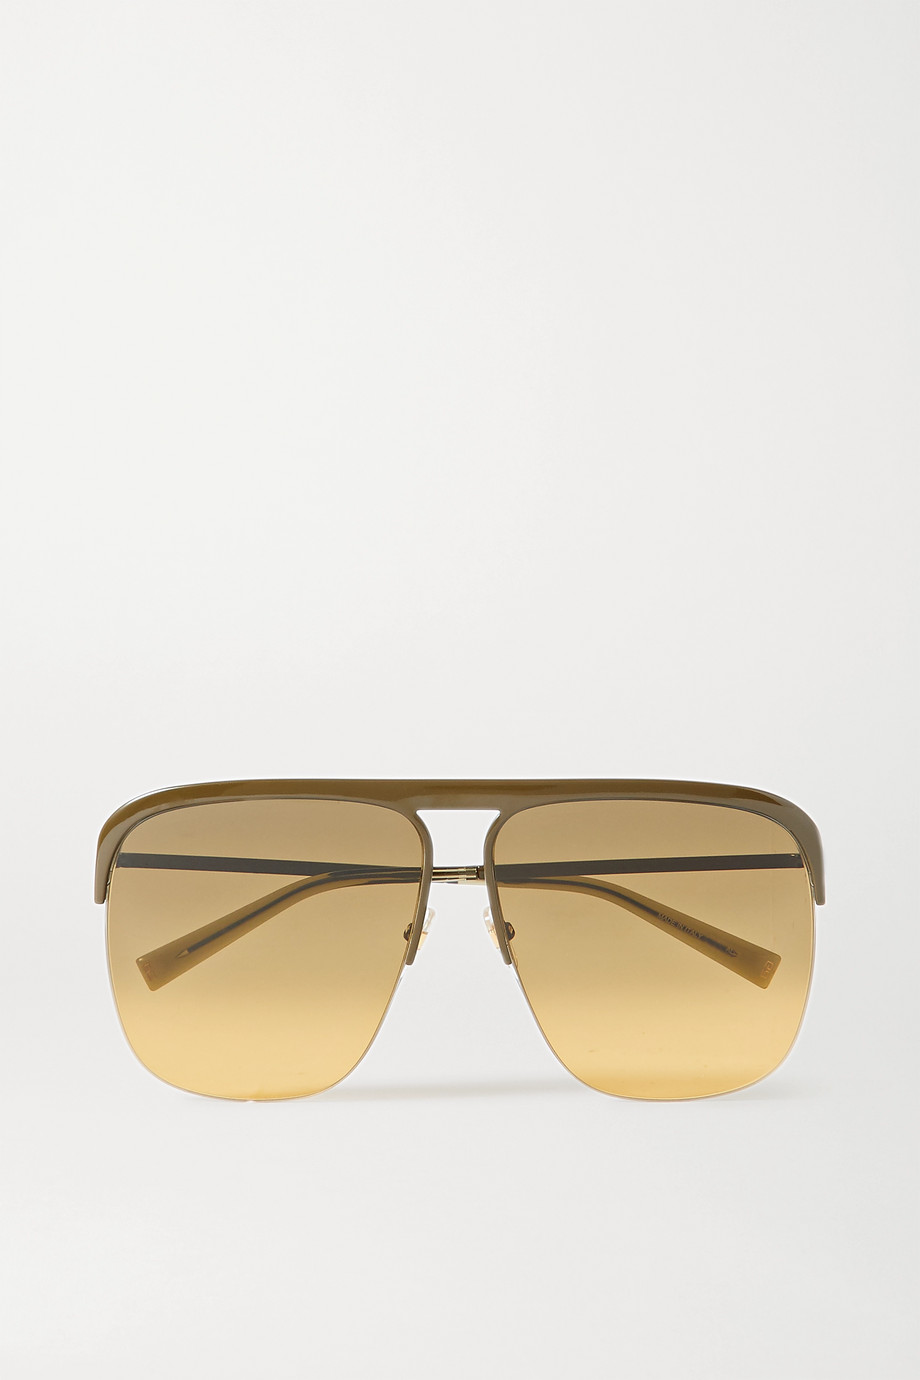 Givenchy Oversized D-frame metal sunglasses